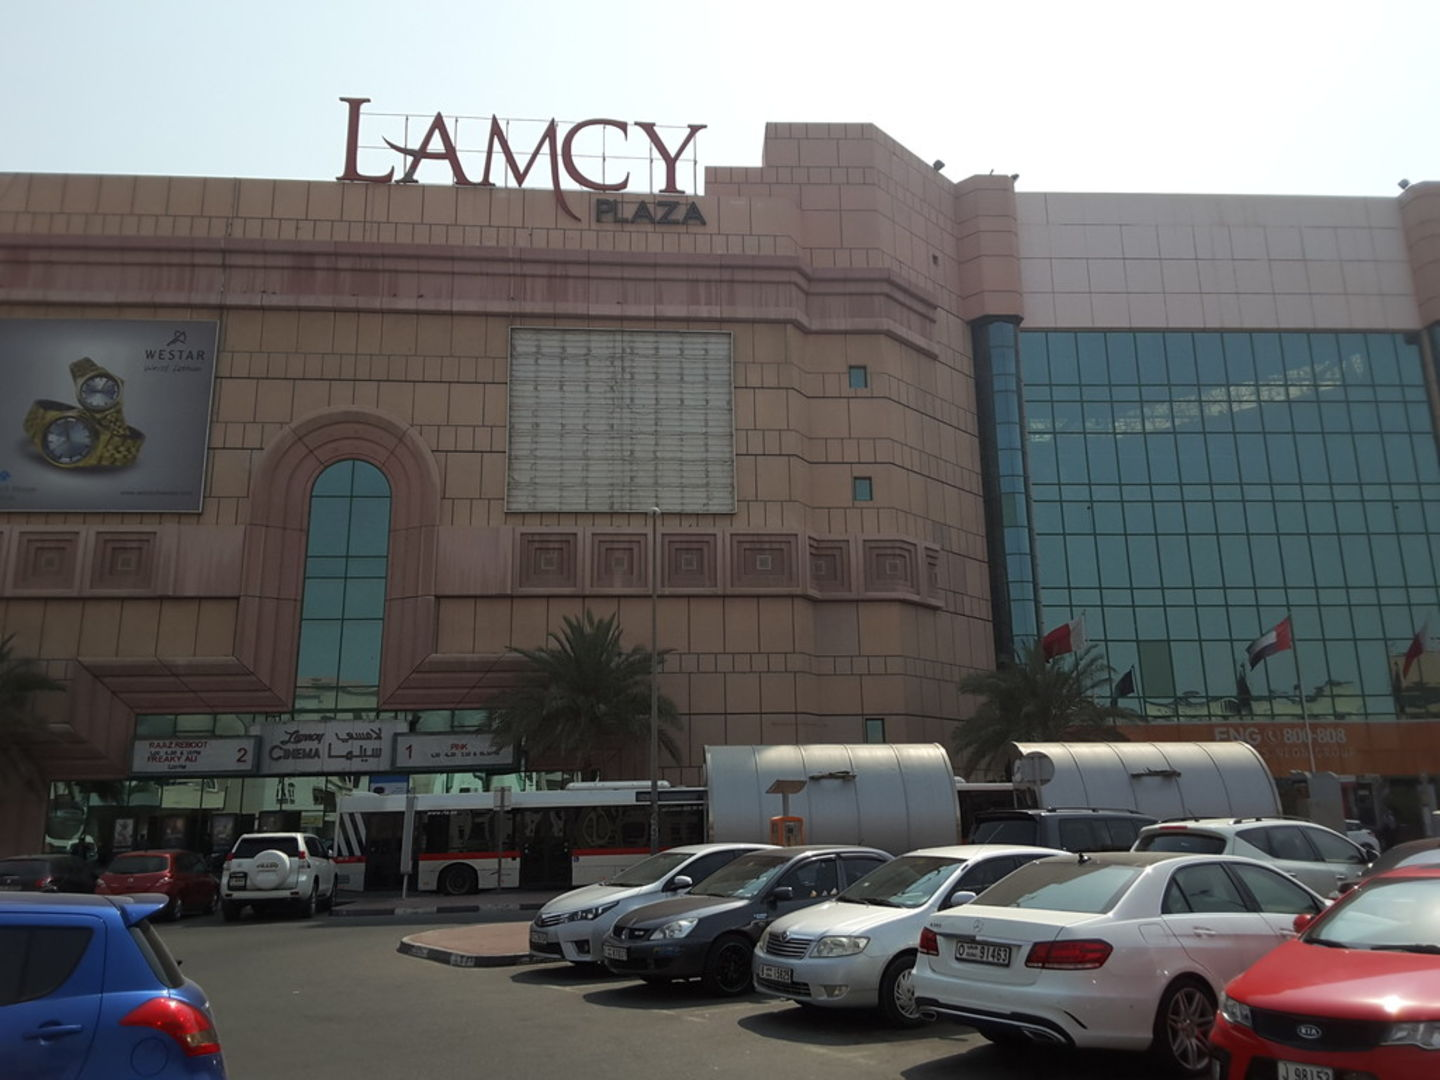 adidas factory outlet near lamcy plaza